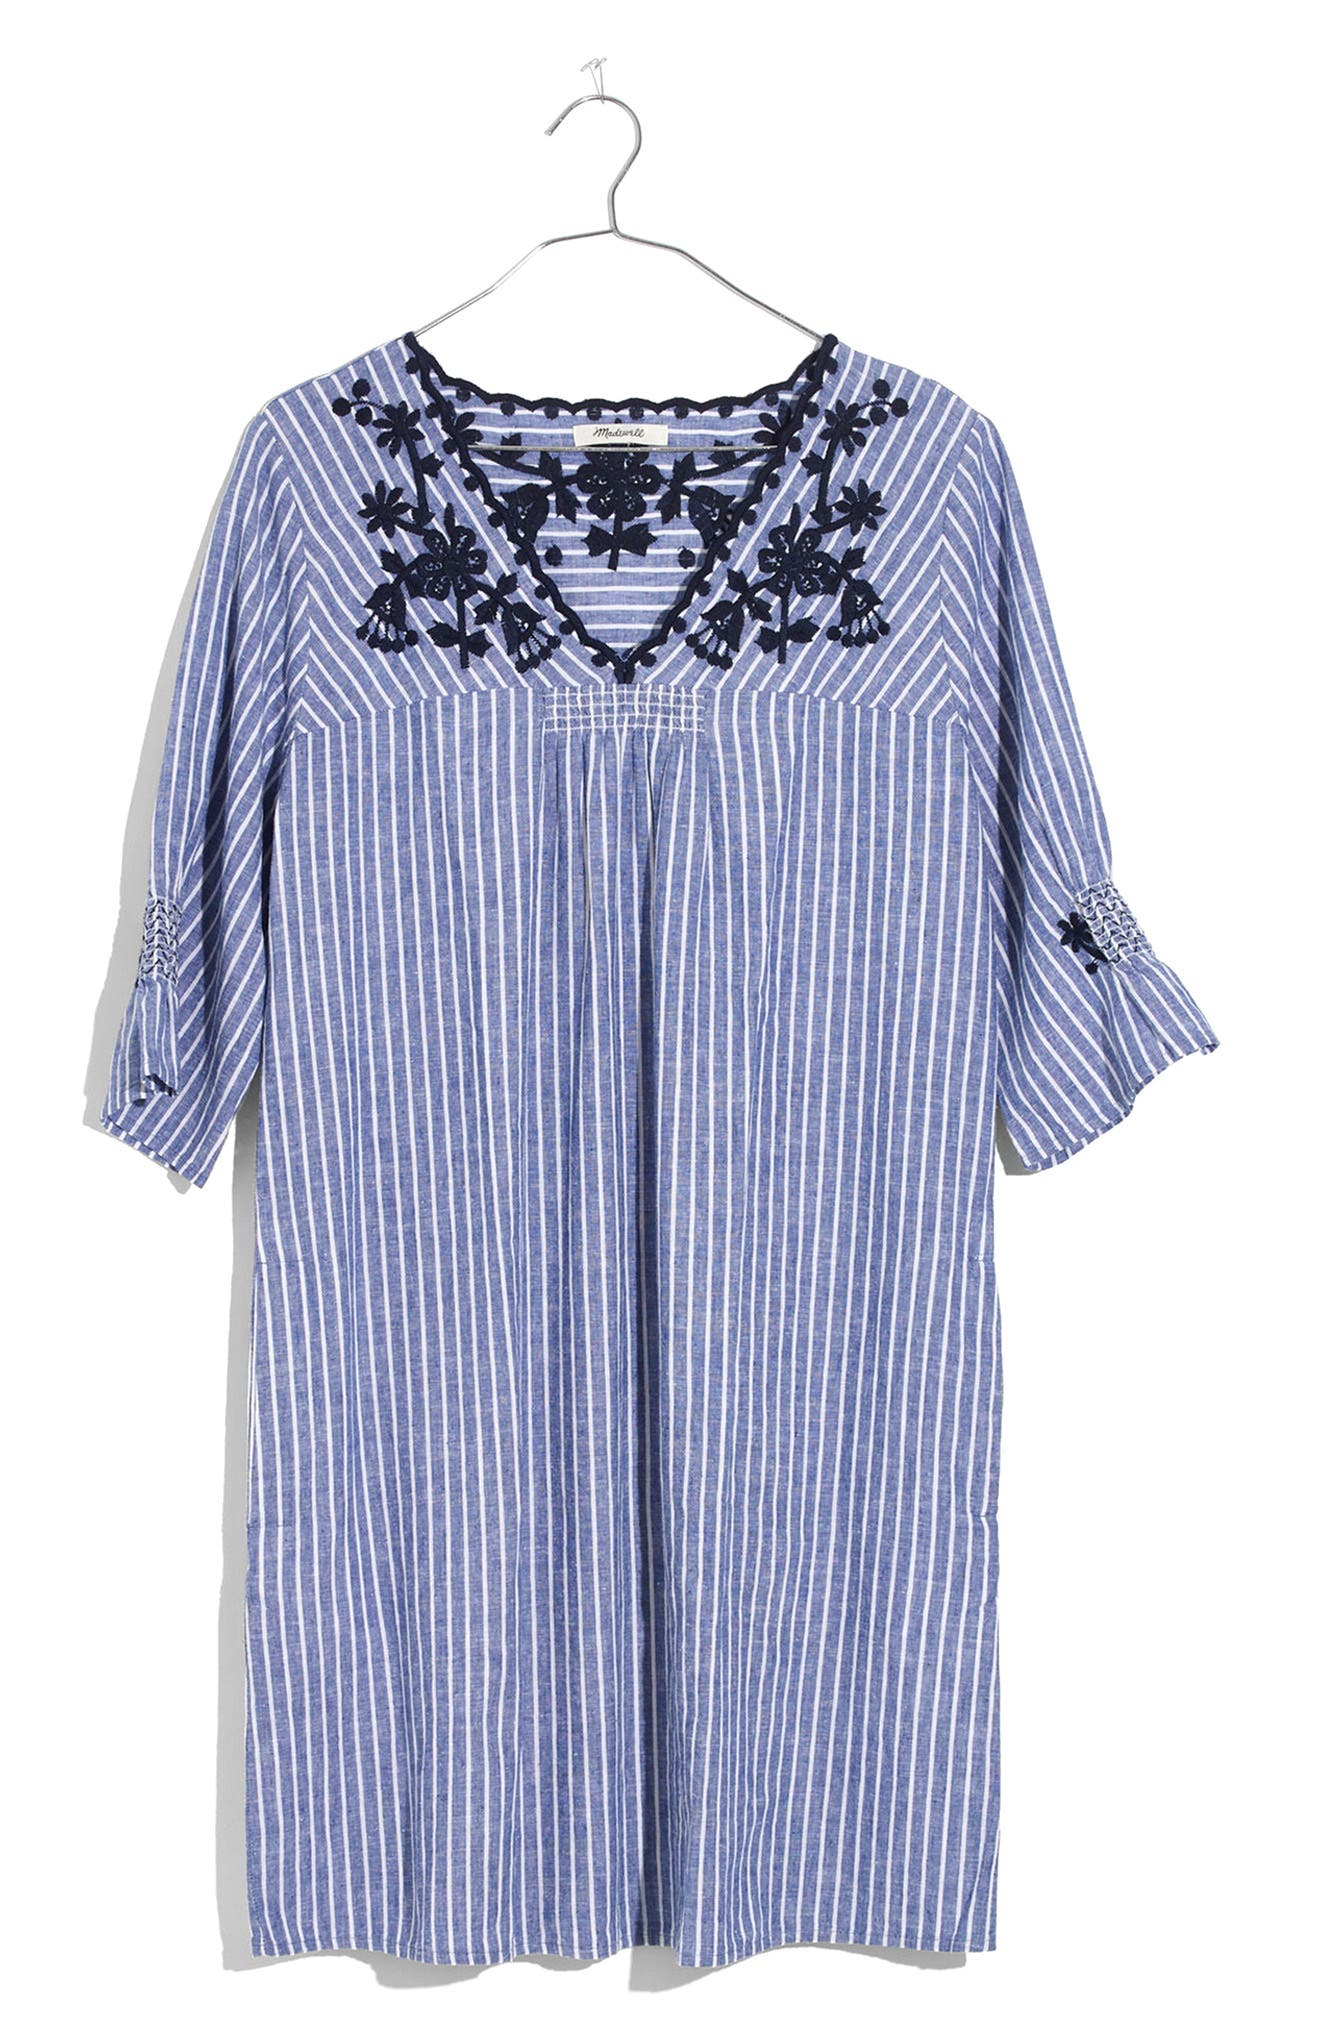 Breeze Embroidered Shift Dress,                             Alternate thumbnail 3, color,                             400